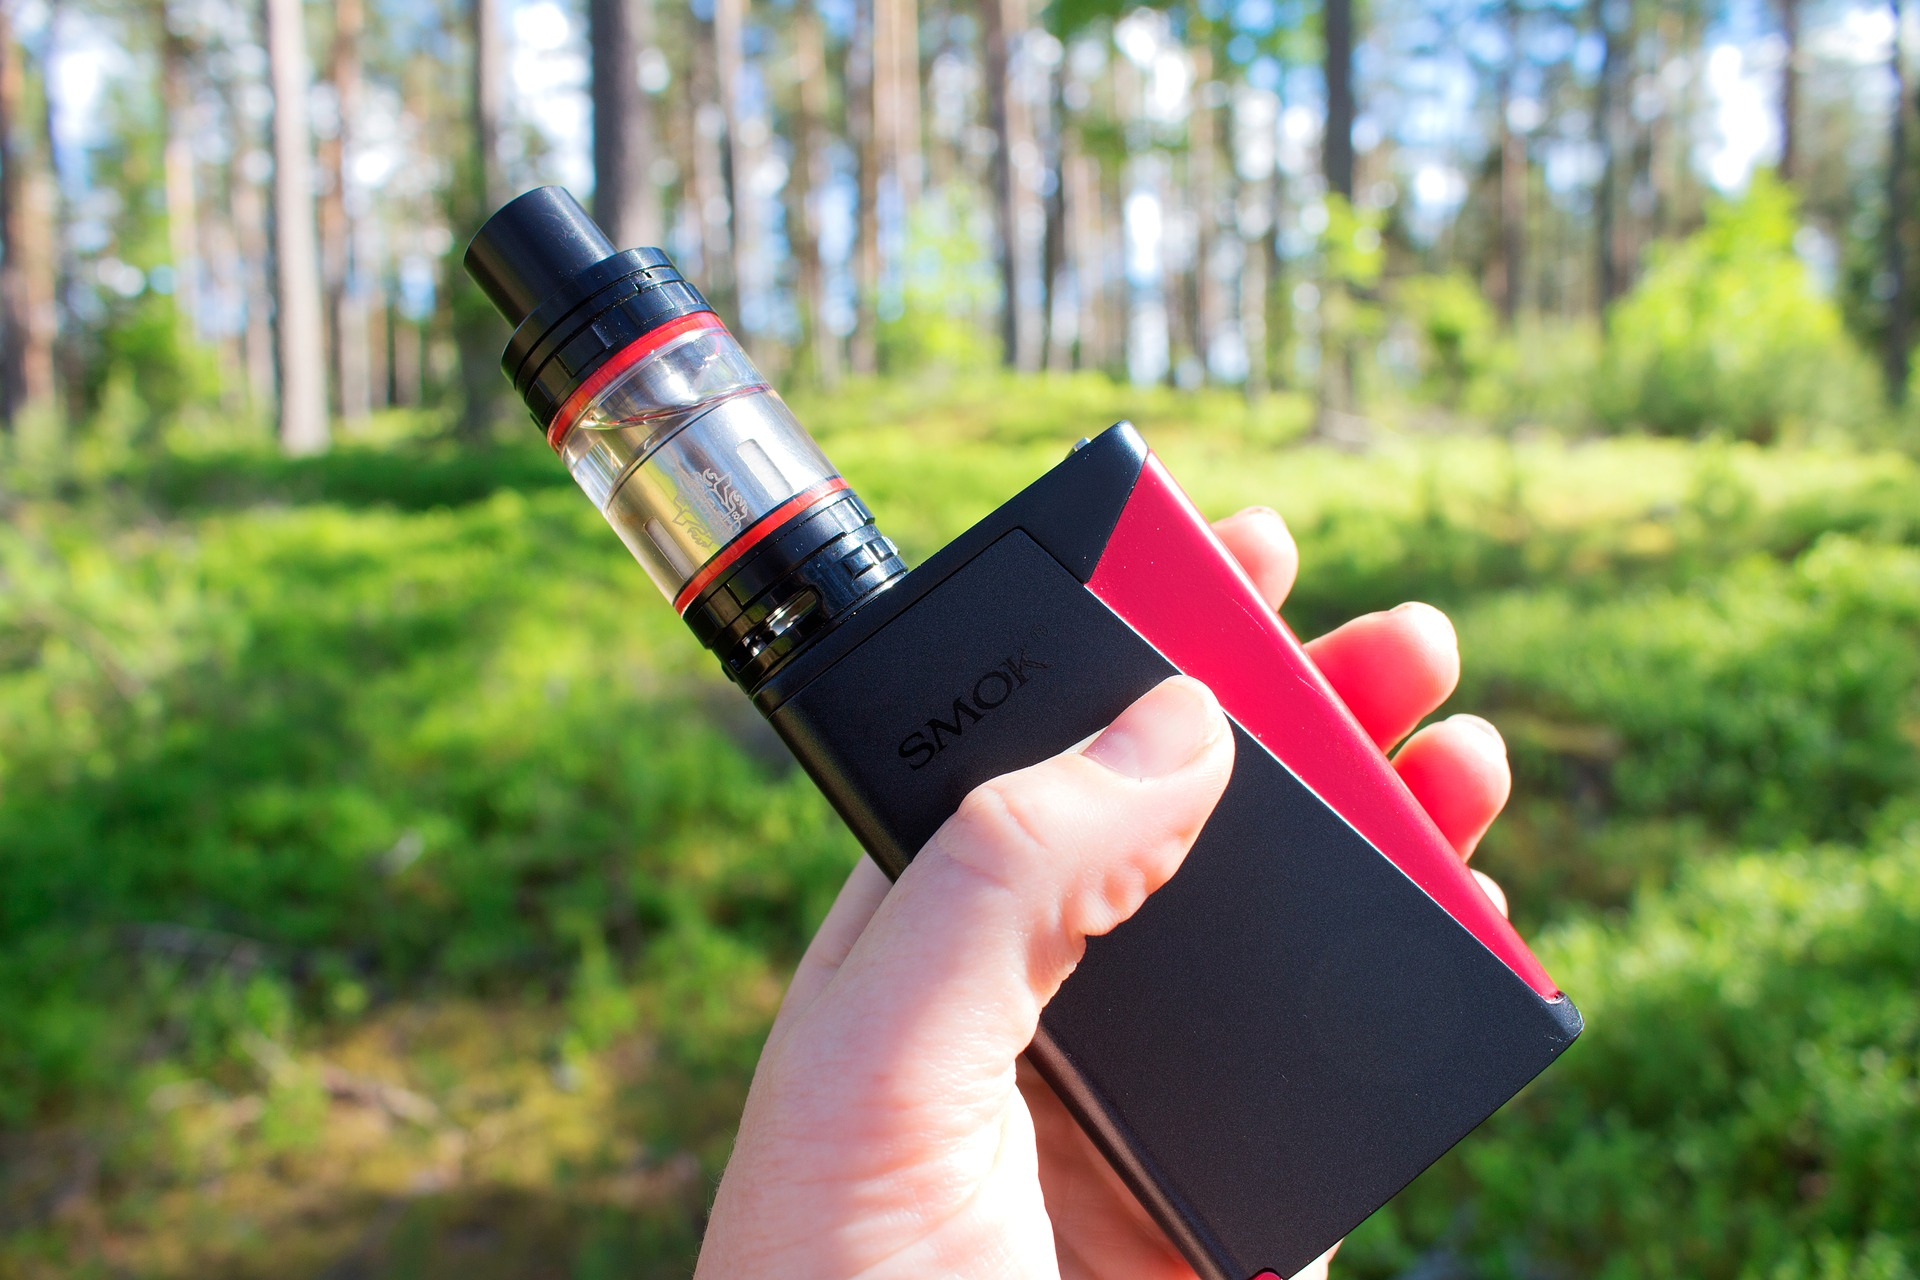 Resources for vaping and e-cigarette prevention